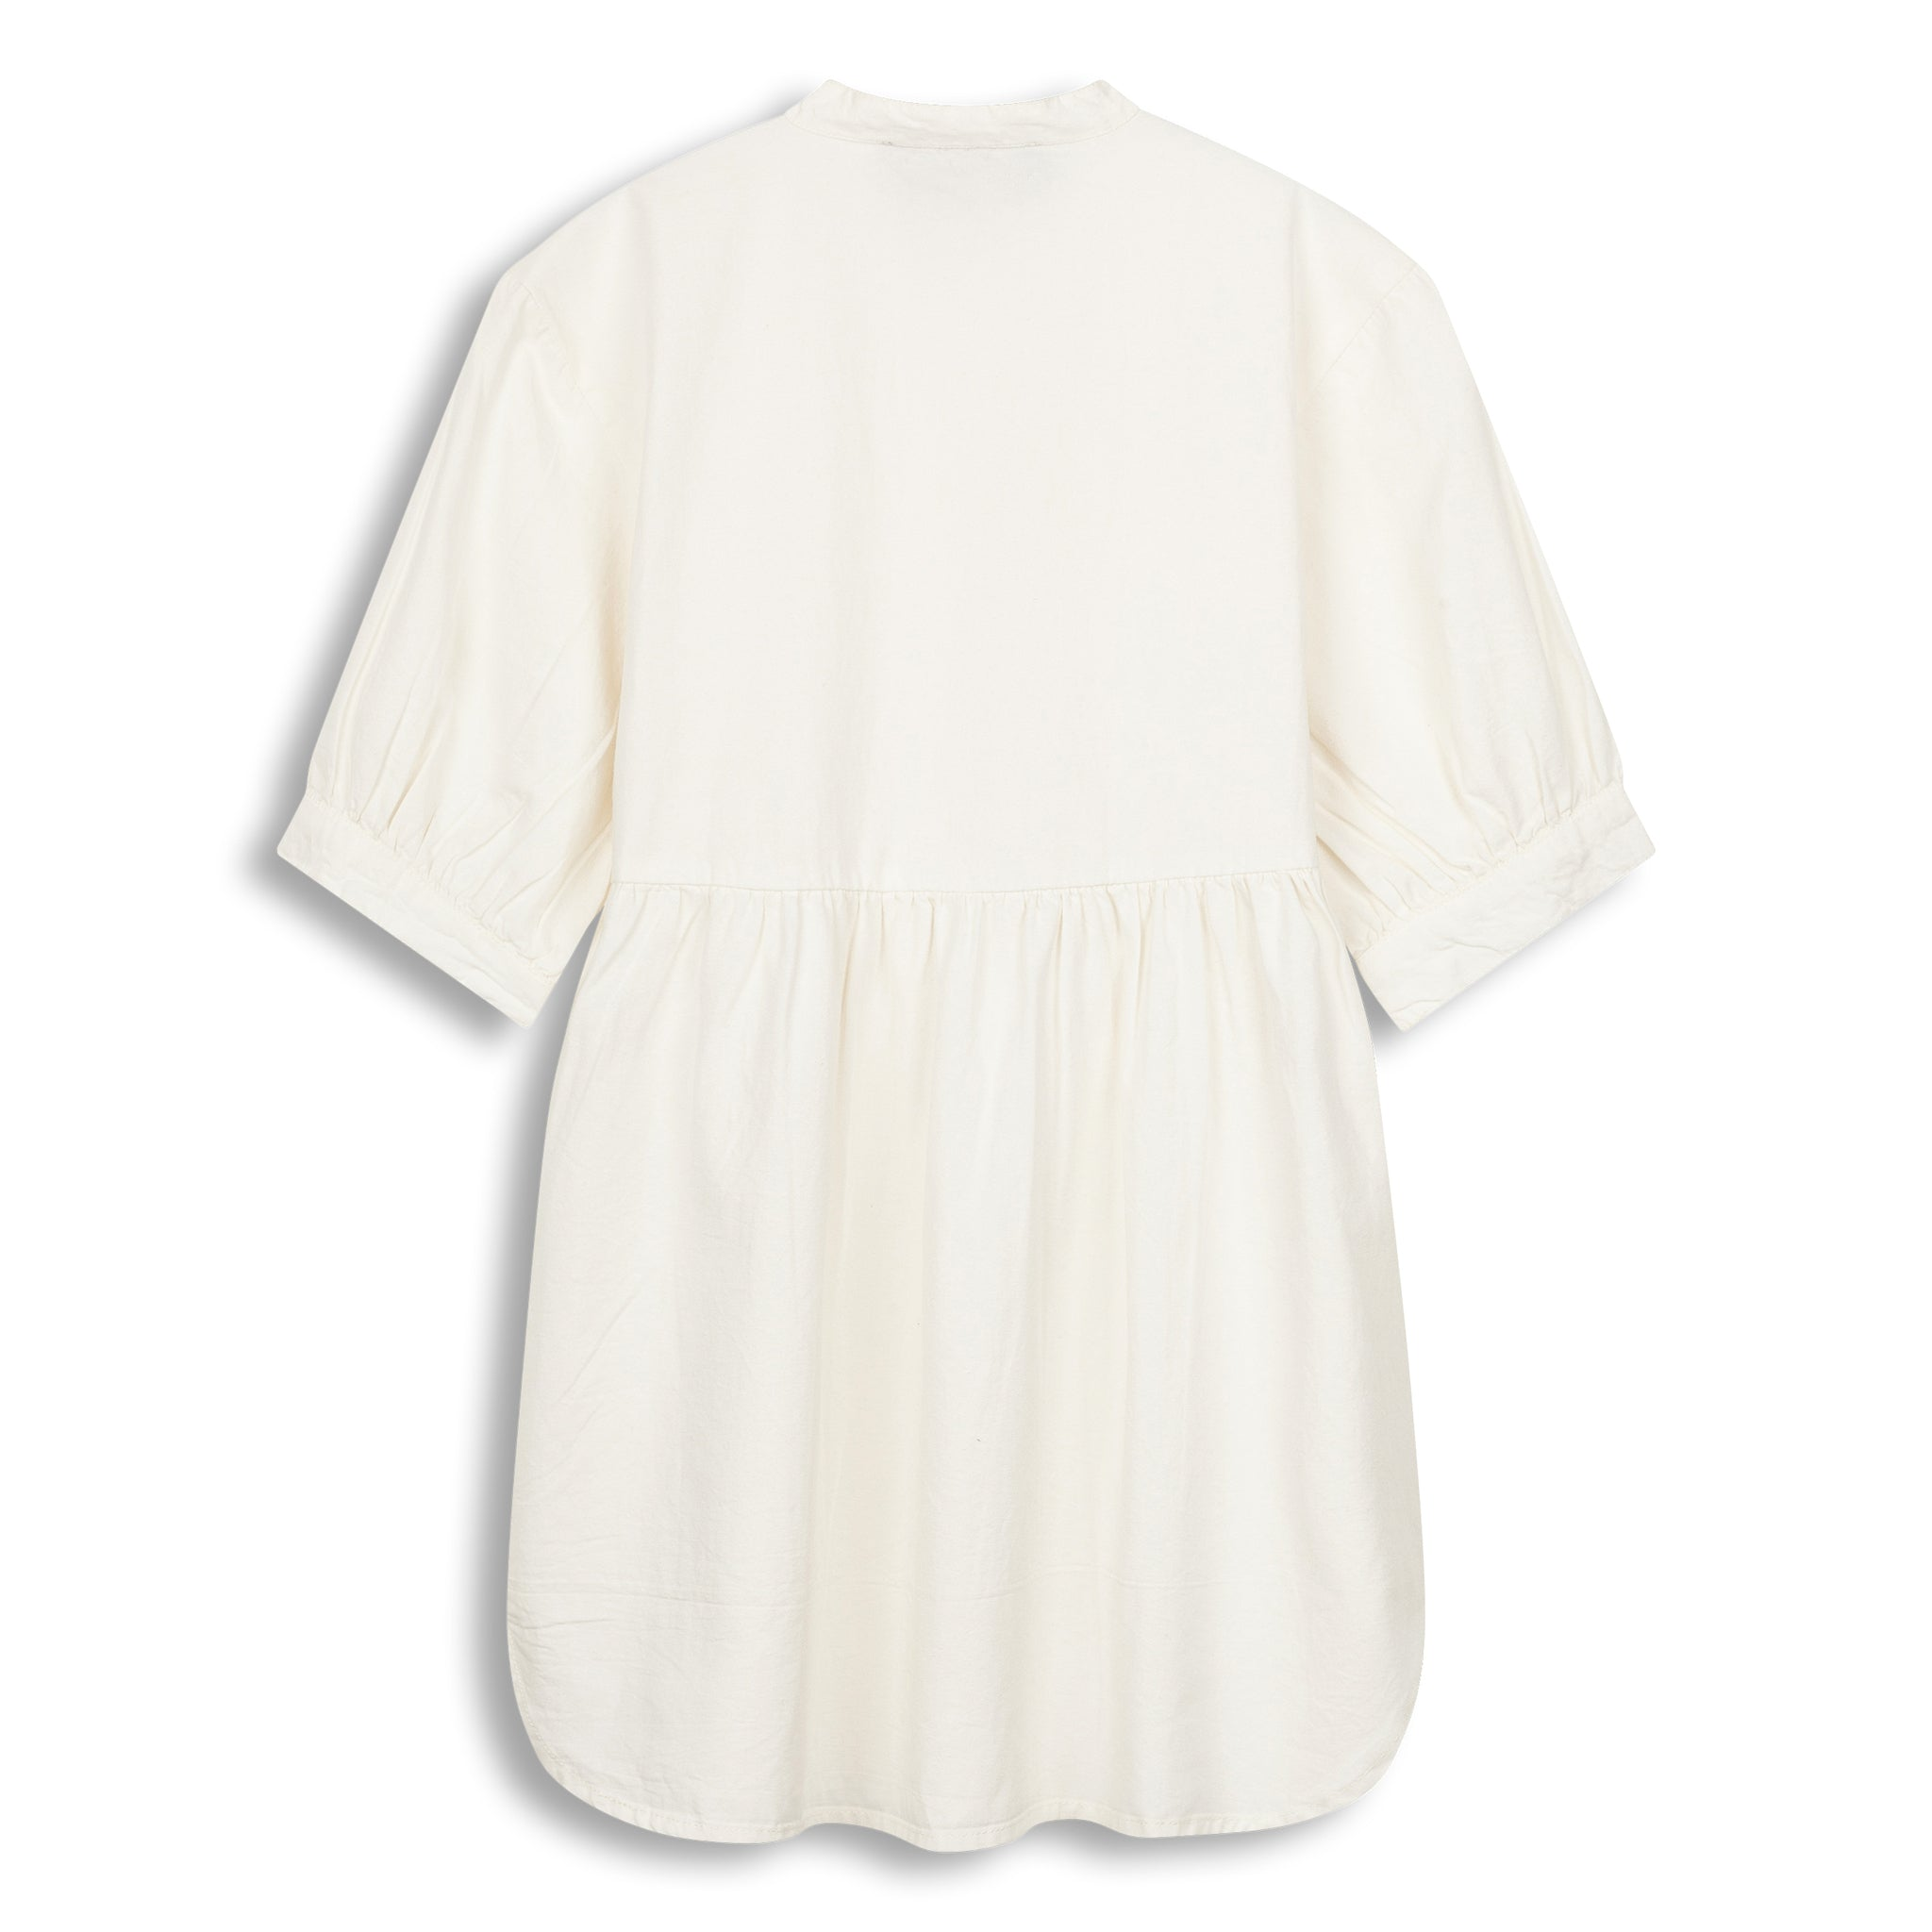 SWING White - Short Sleeve Oversized Dress 3